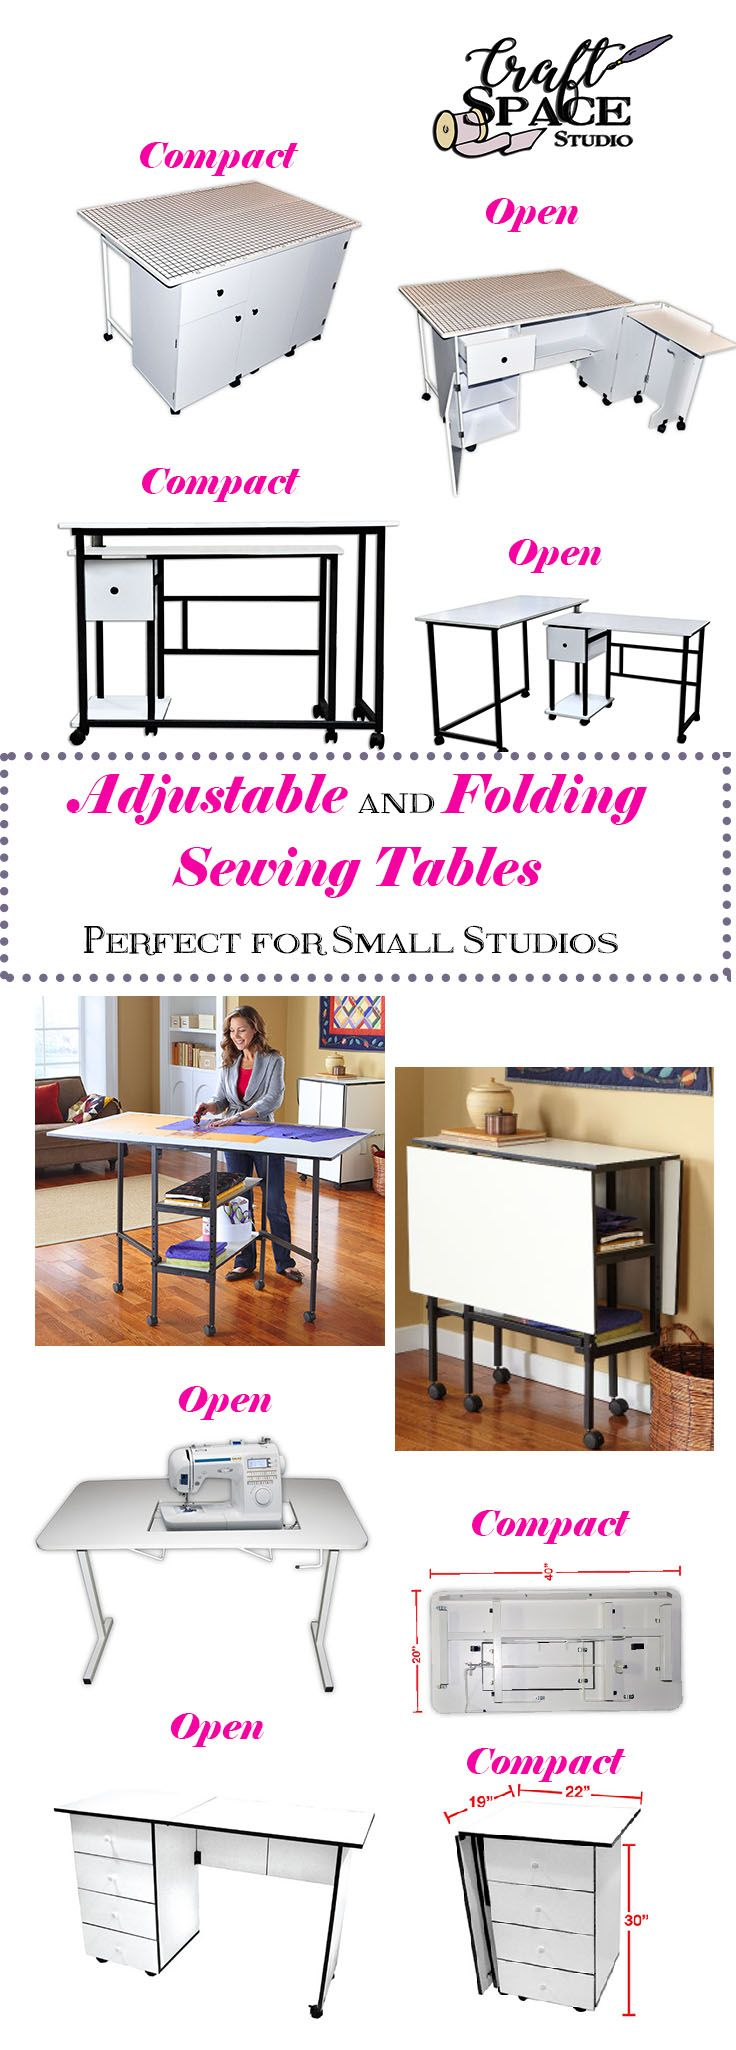 Adjustable Workspace Sewing Tables, Great For Small Spaces Or To Stow Away